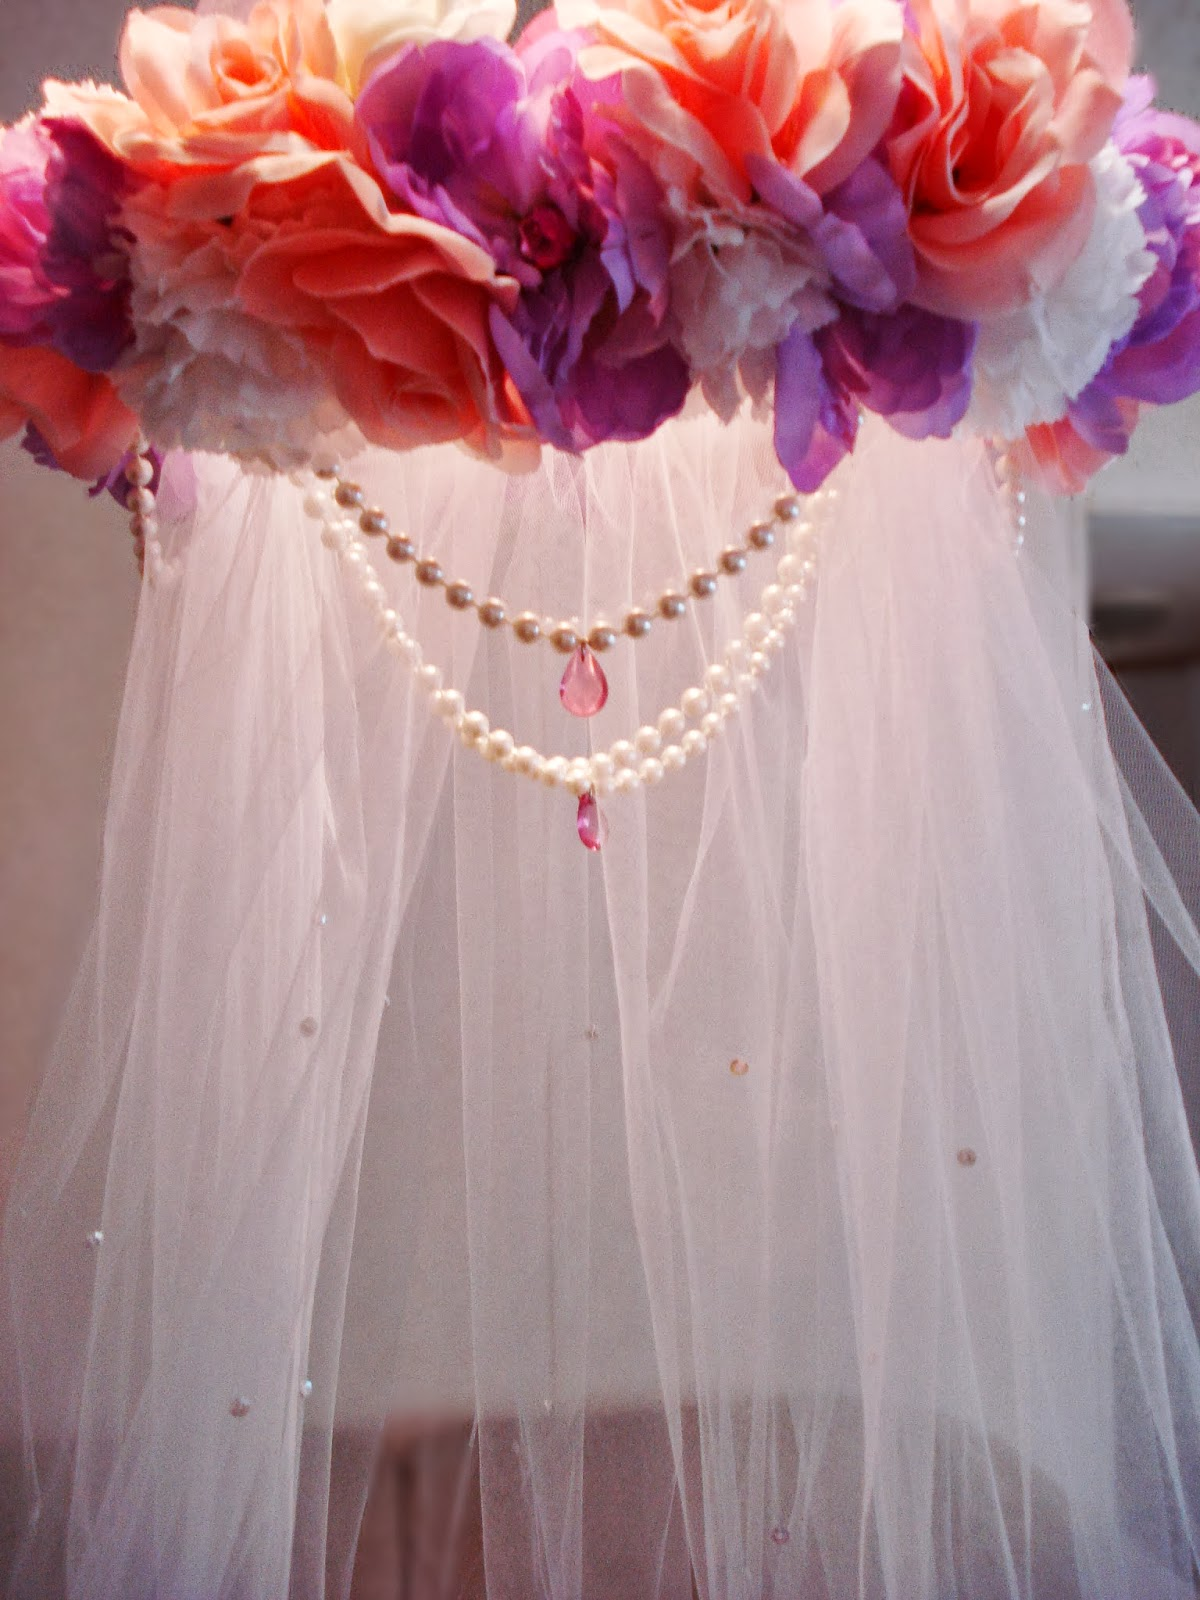 Spins On Pins DIY Princess Flower Easy Canopy